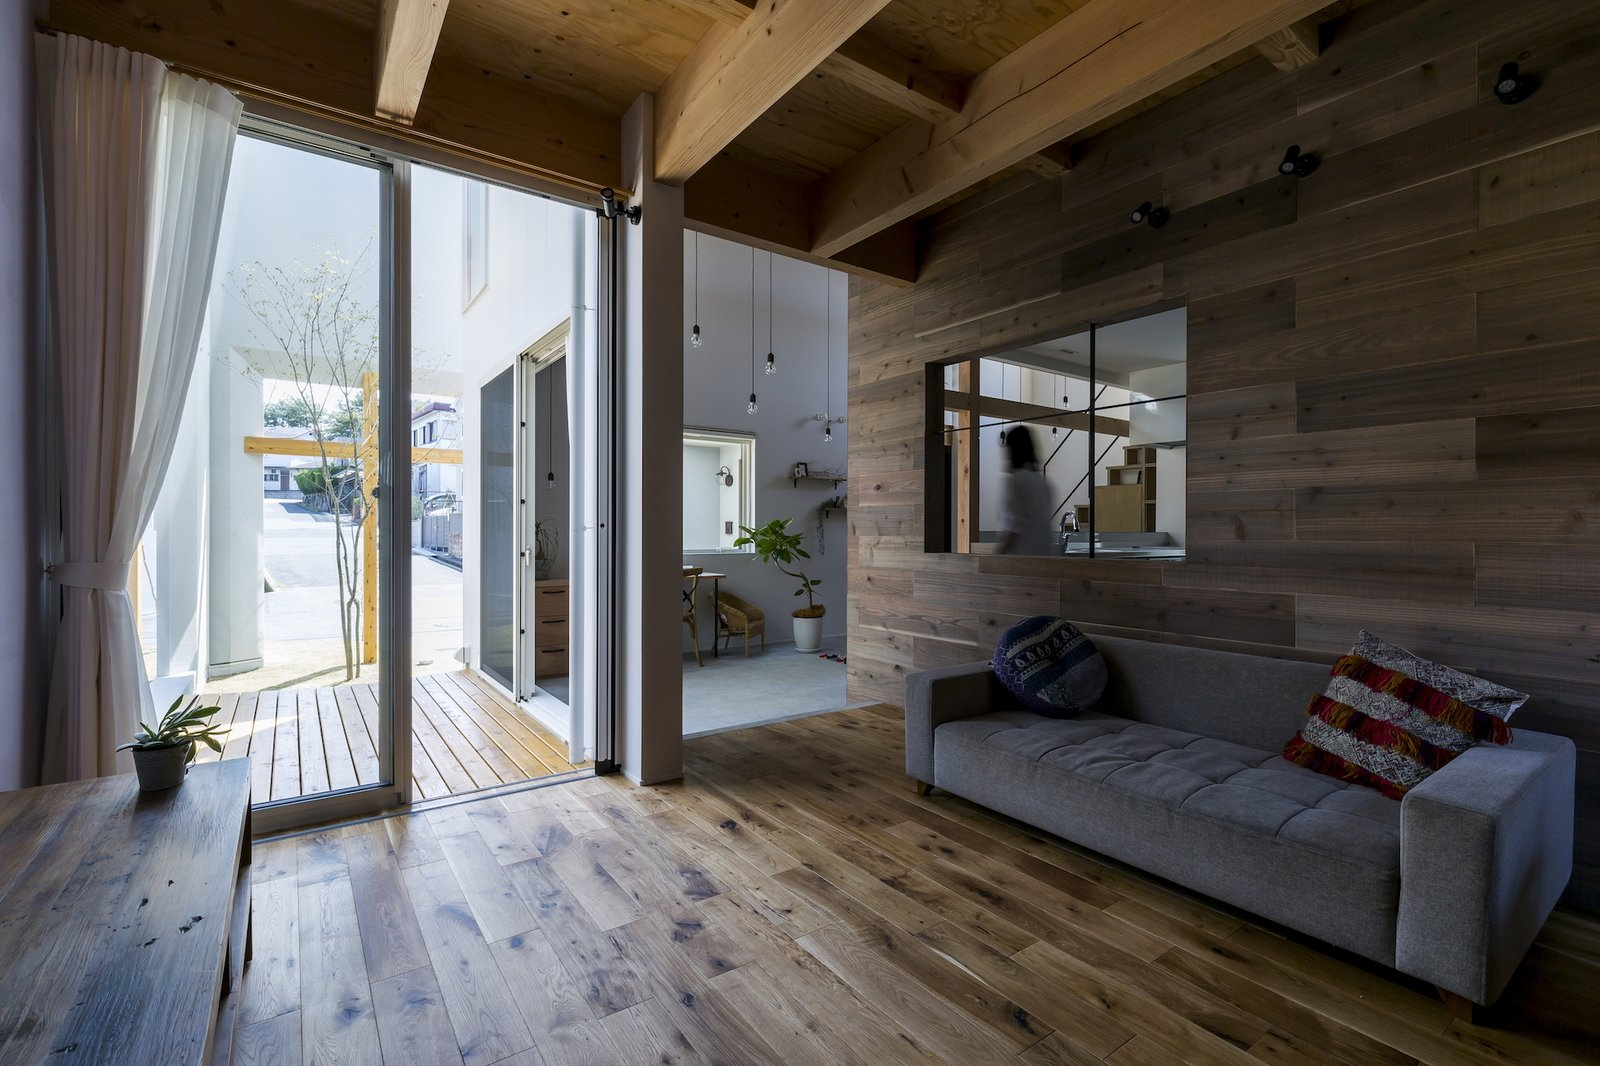 Photo 2 of 4 in Uji House by ALTS Design Office